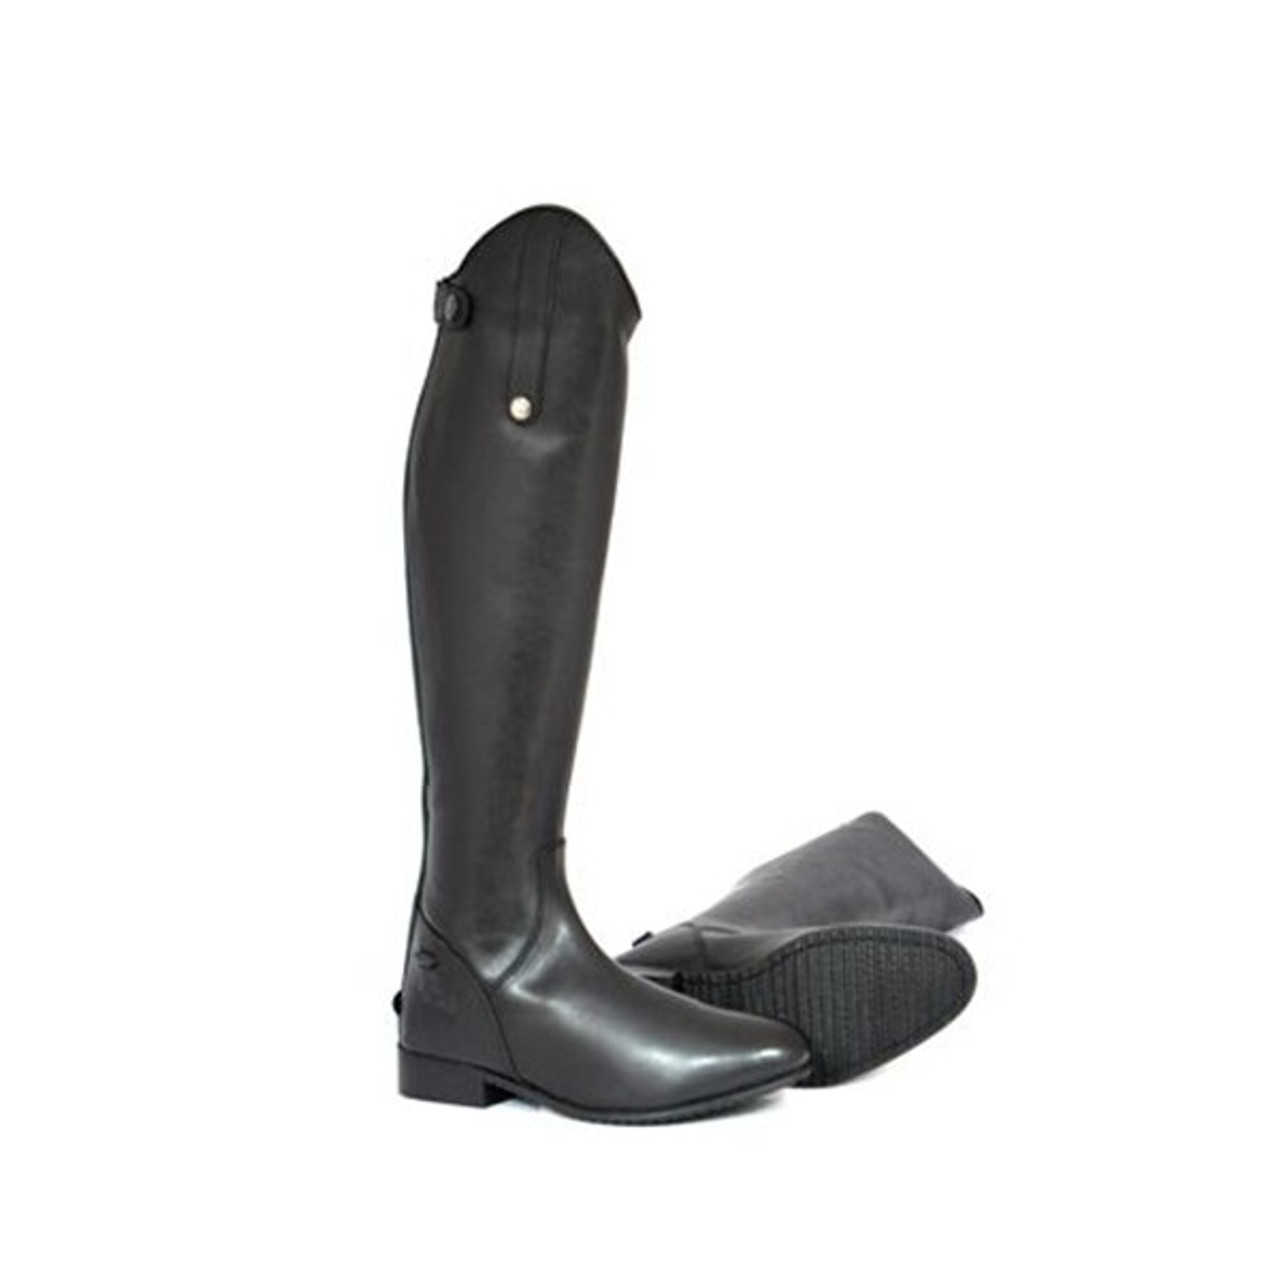 26d29d74189b Mark Todd Long Leather Riding Boots - Adult Wide - Short - HOOVES AND  BOONIES